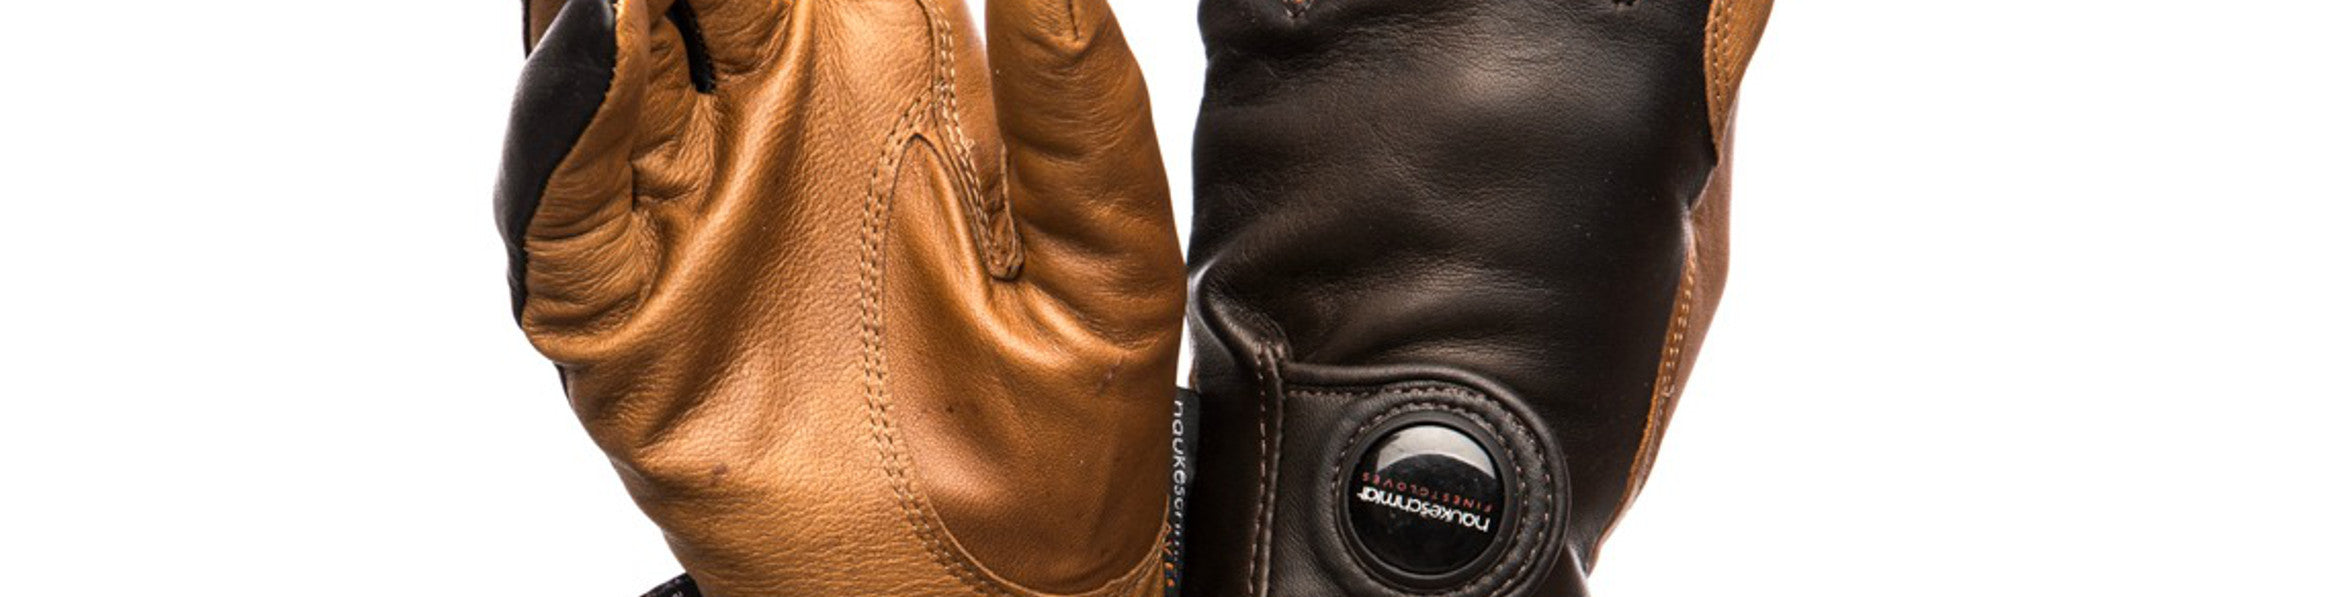 Haukeschmidt Gloves are Classically Elegant and Beautifully made using either only the best quality Leathers or Durable Technical Fabrics.